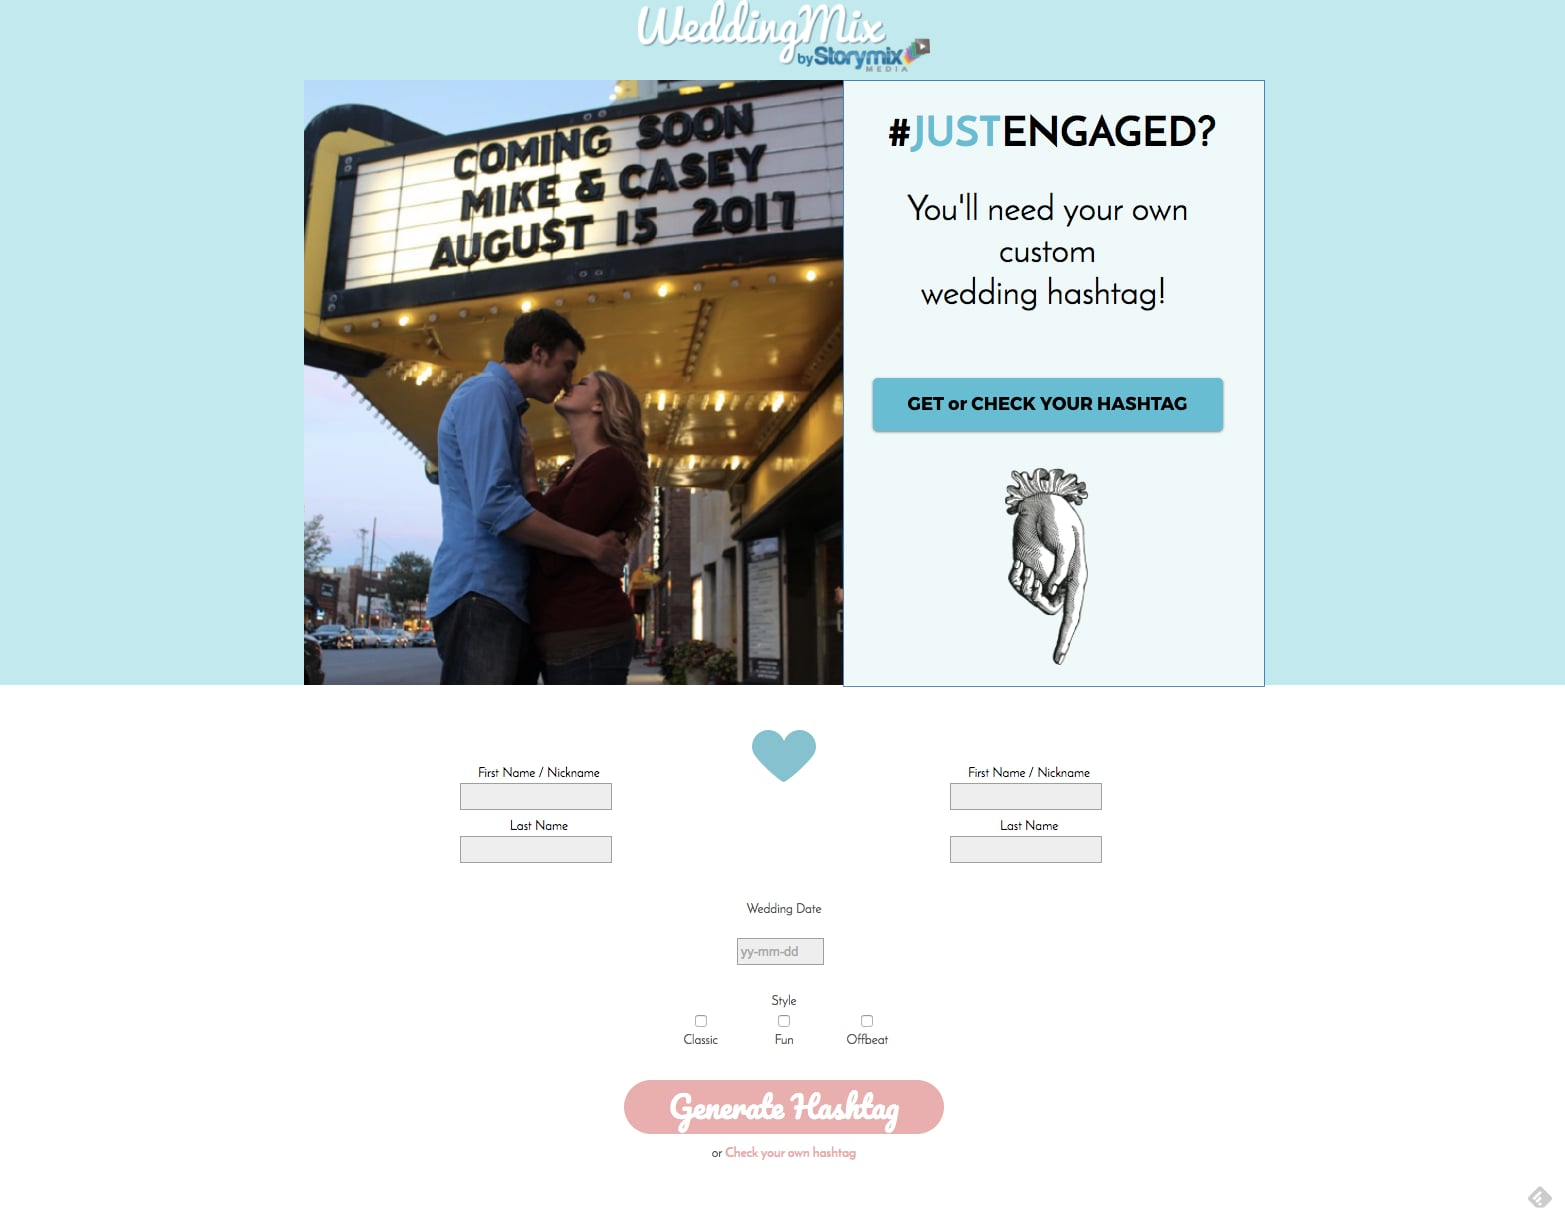 b4f7caf2b0d21362 Screen Shot 2017 03 16 at 4.43.02 PM This Website Will Create a Free Wedding Hashtag in Seconds